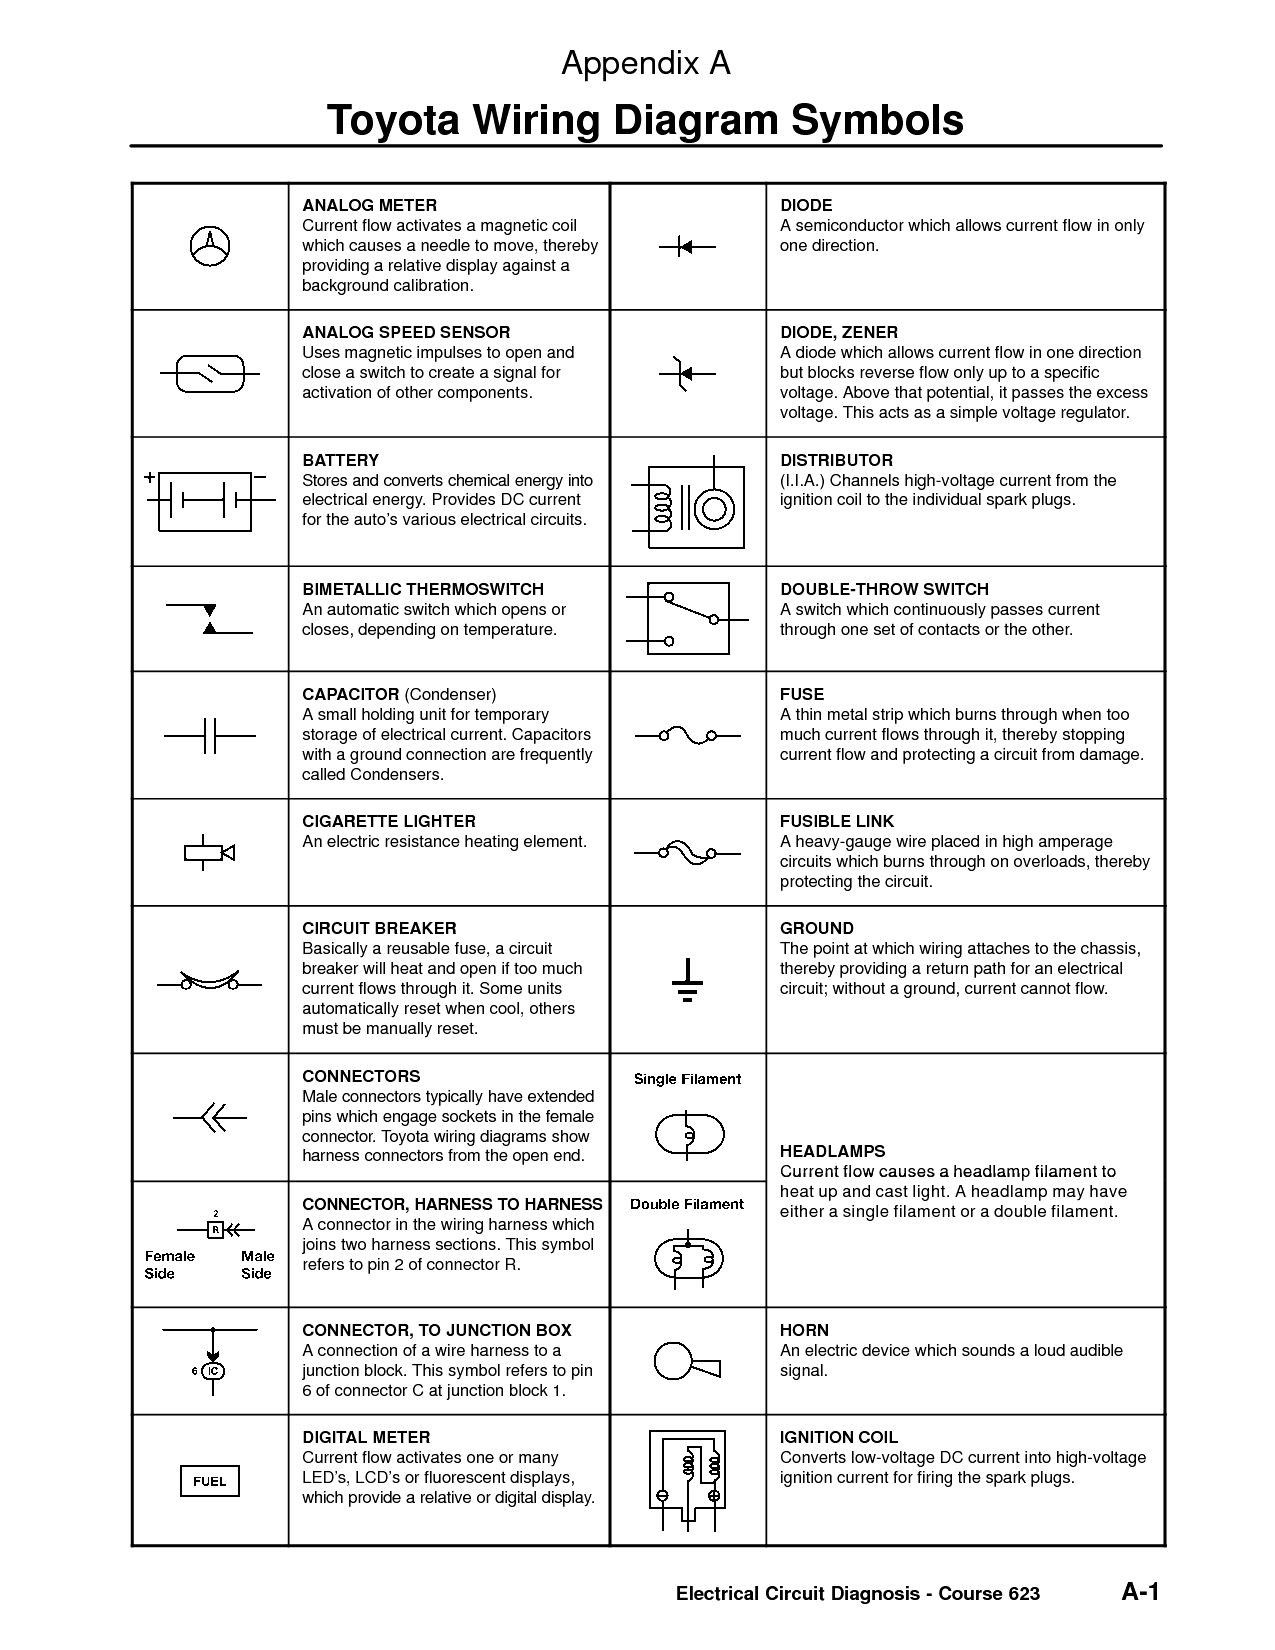 [FPWZ_2684]  New Single Line Diagram Symbols #diagram #wiringdiagram #diagramming  #Diagramm #visuals #visual… | Electrical symbols, Electrical wiring diagram,  Electrical diagram | Residential Wiring Diagrams Symbols And Codes |  | www.pinterest.co.kr